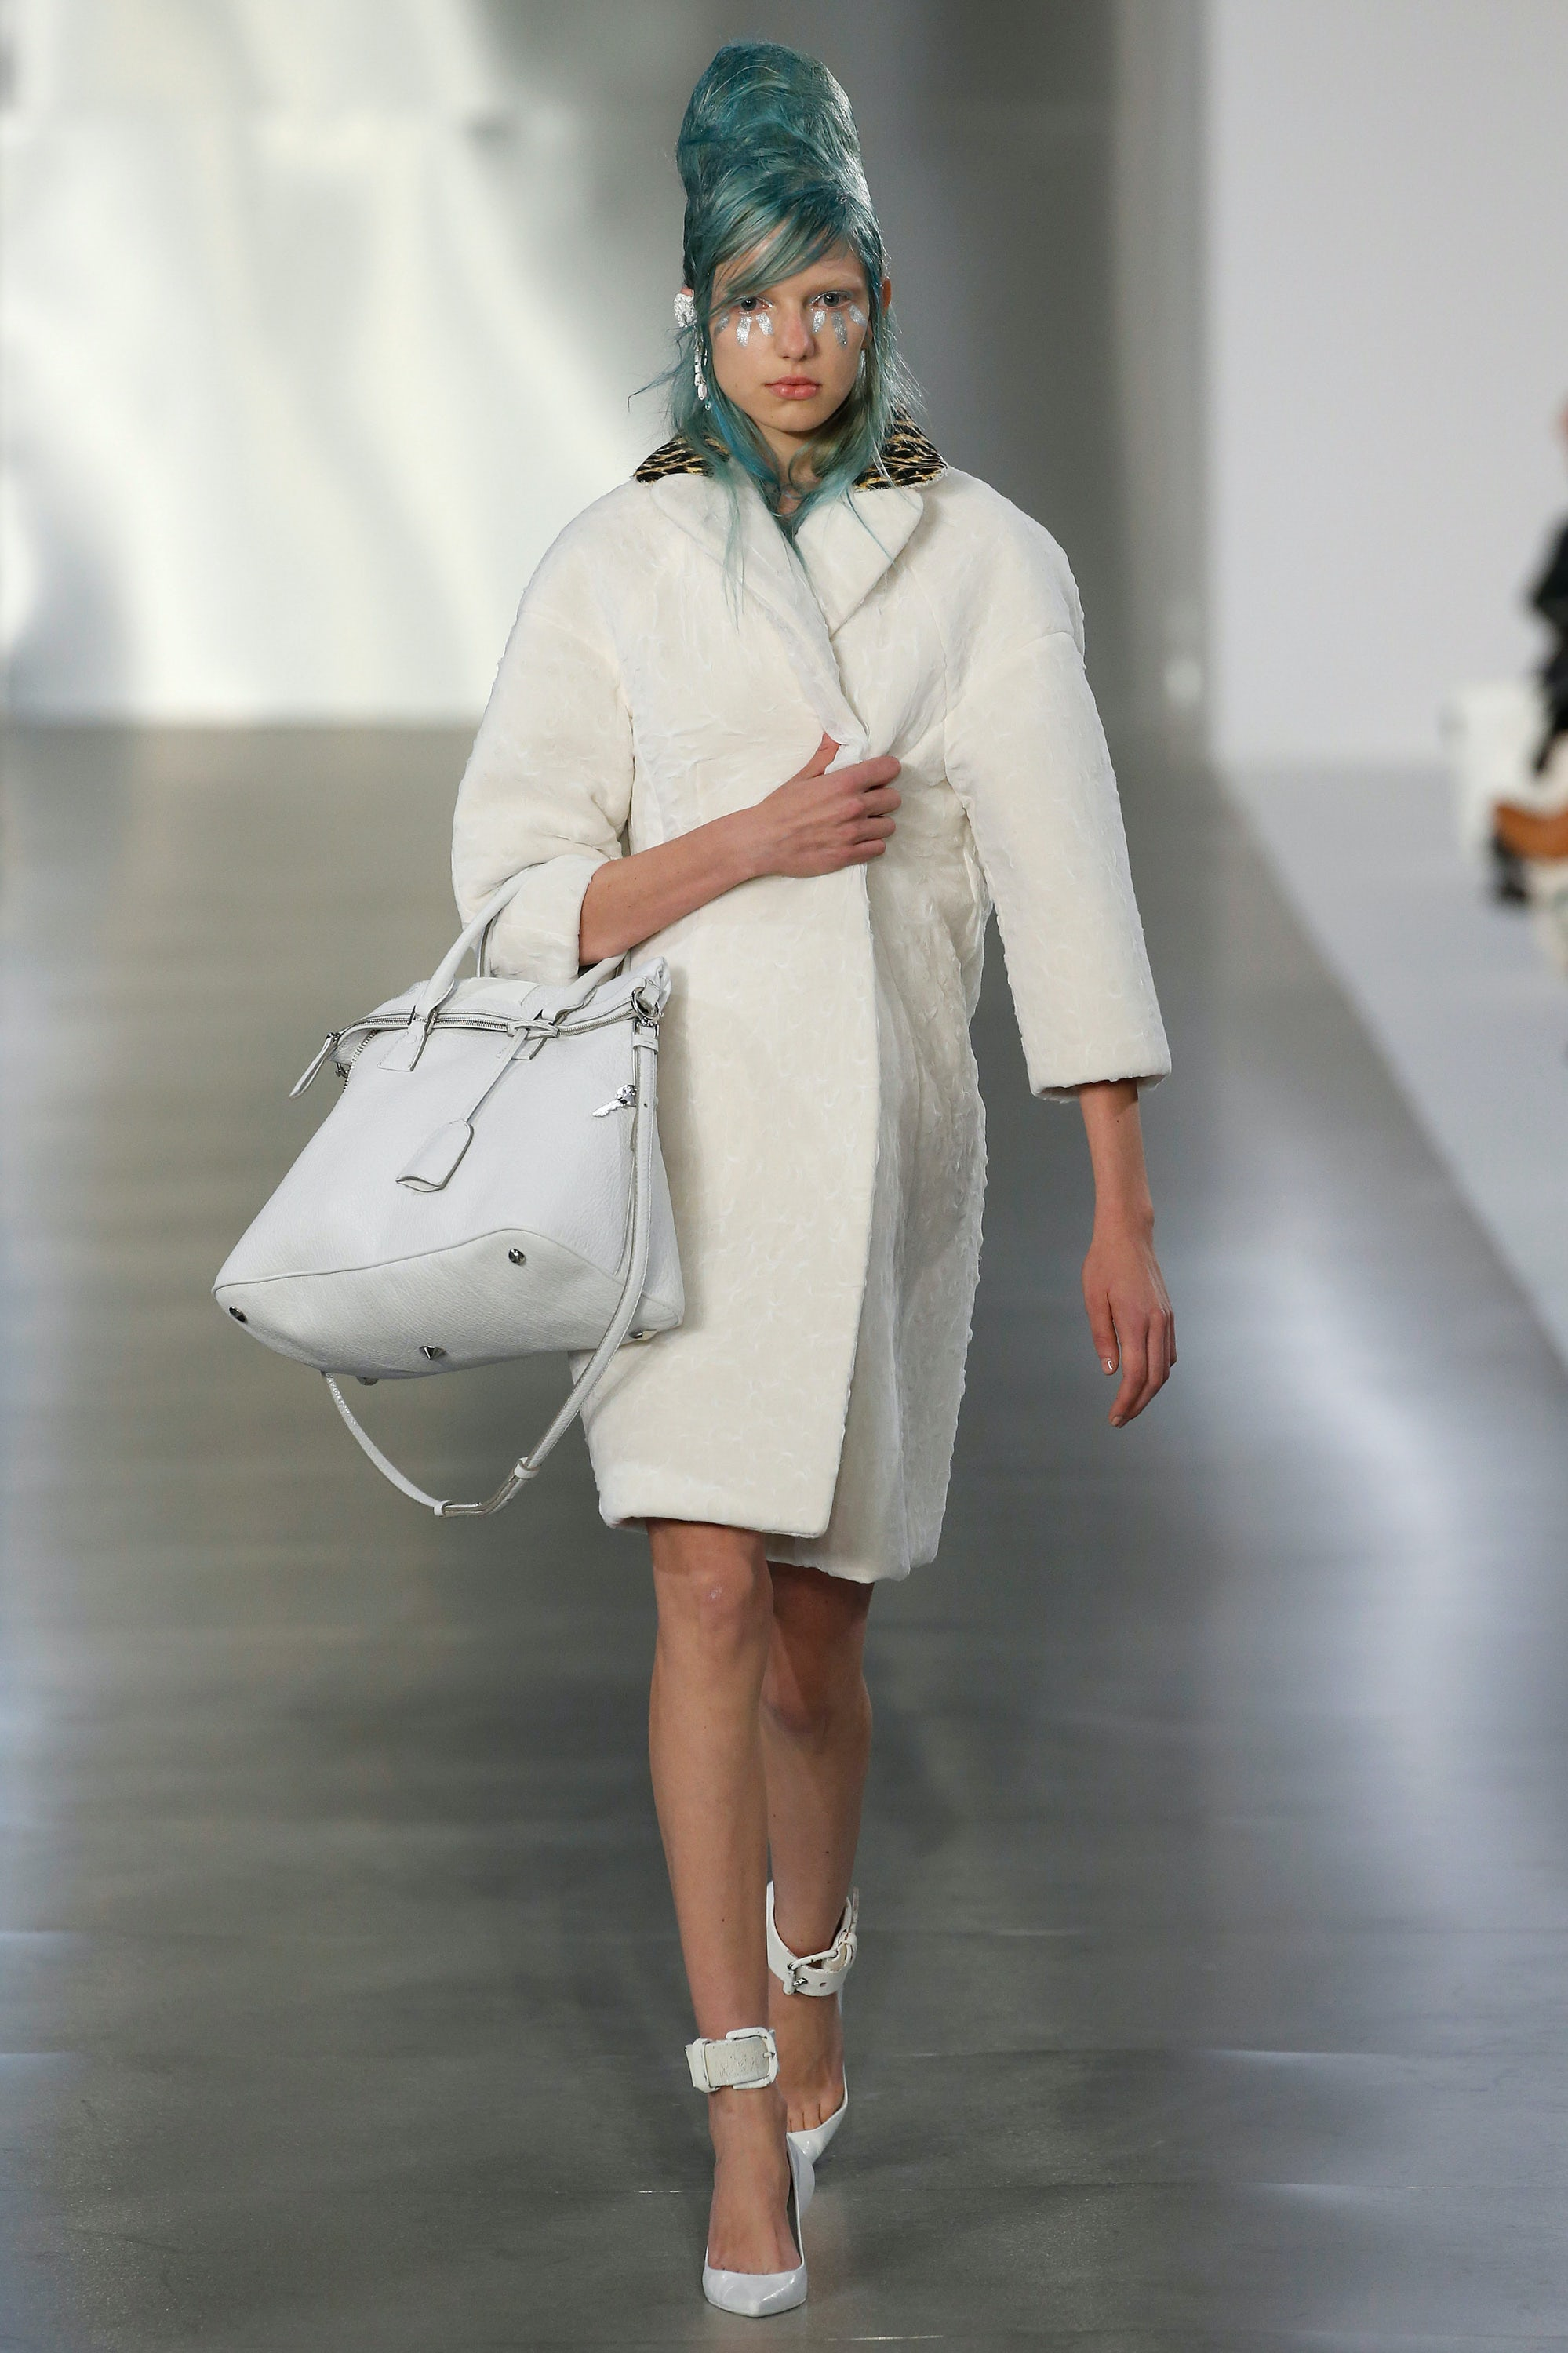 Galliano and Margiela: A Ready-to-Wear Round Two